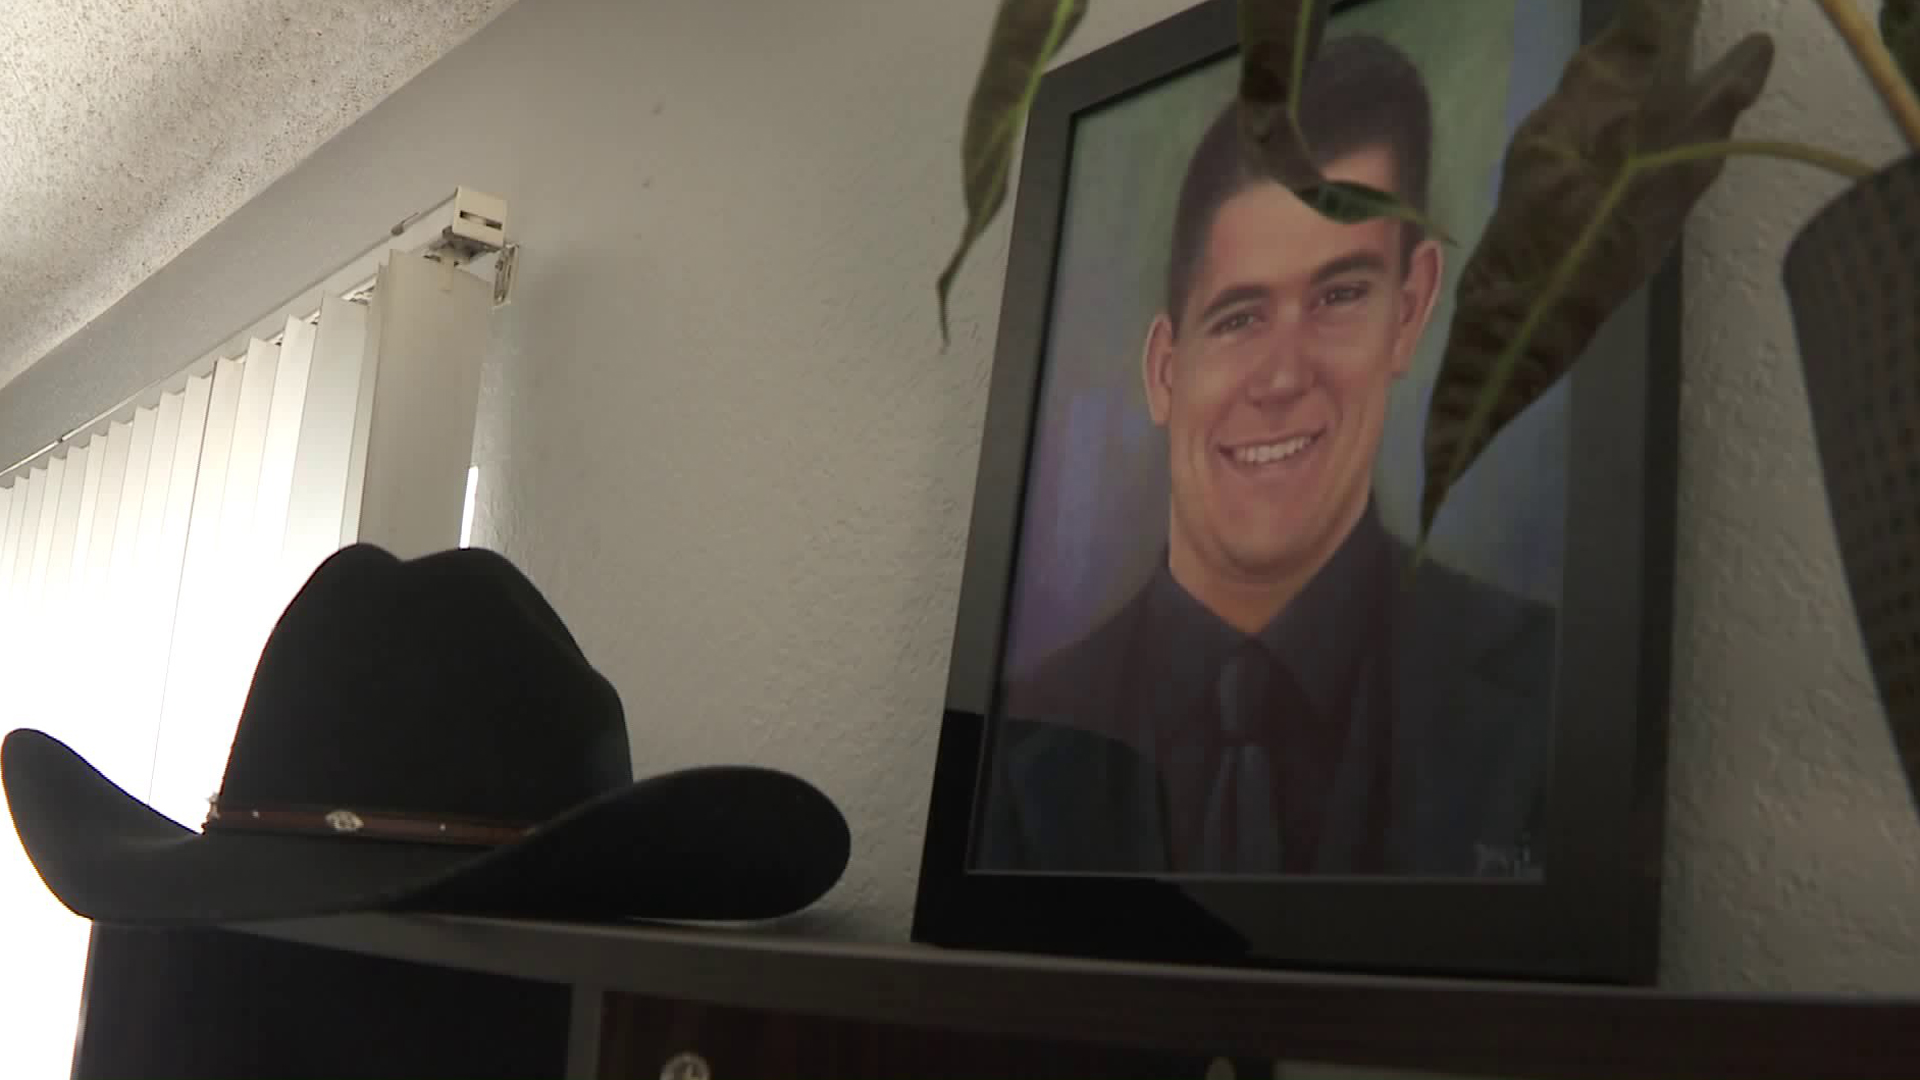 Cody Coffman appears in a photo displayed in his family's living room a year after he died in the 2018 Borderline Bar & Grill mass shooting in Thousand Oaks. (Credit: KTLA)